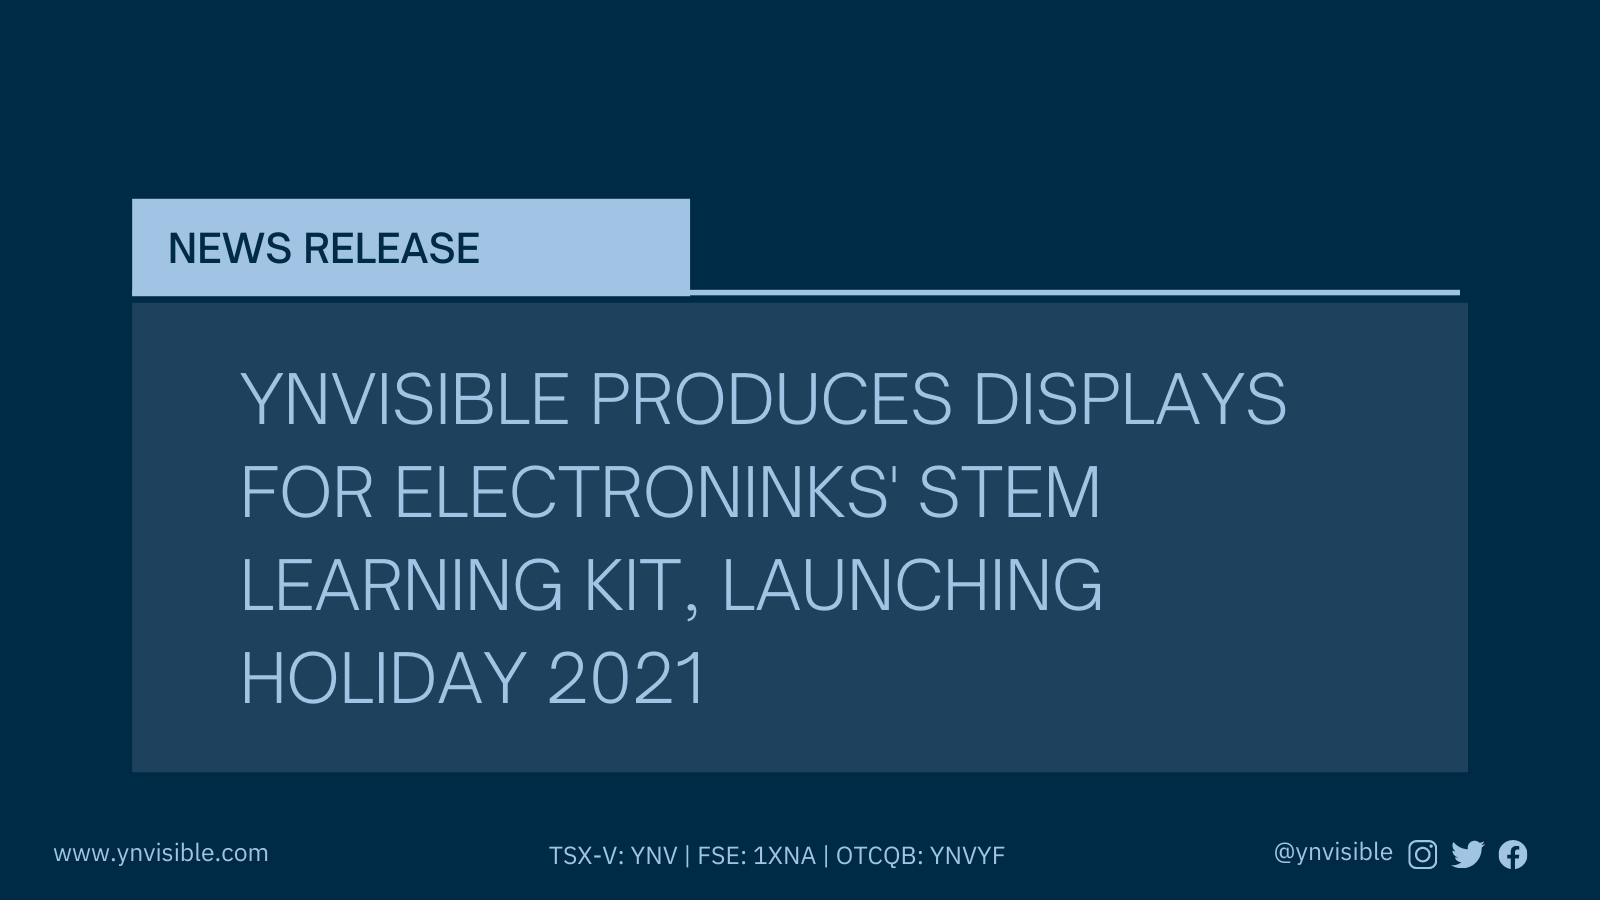 Ynvisible Produces Displays For Electroninks' Stem Learning Kit, Launching Holiday 2021